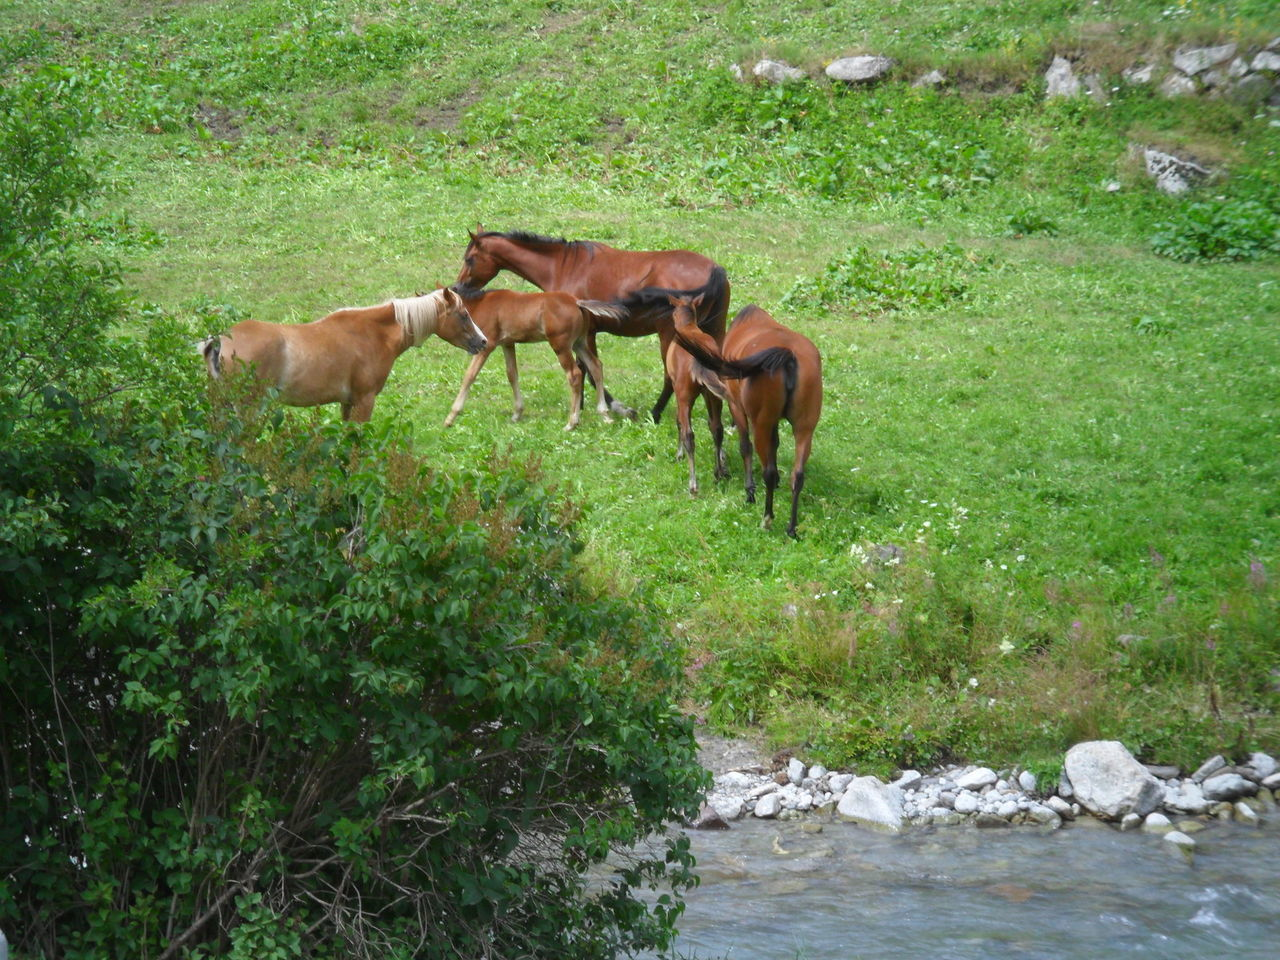 HORSES STANDING ON FIELD BY PLANTS